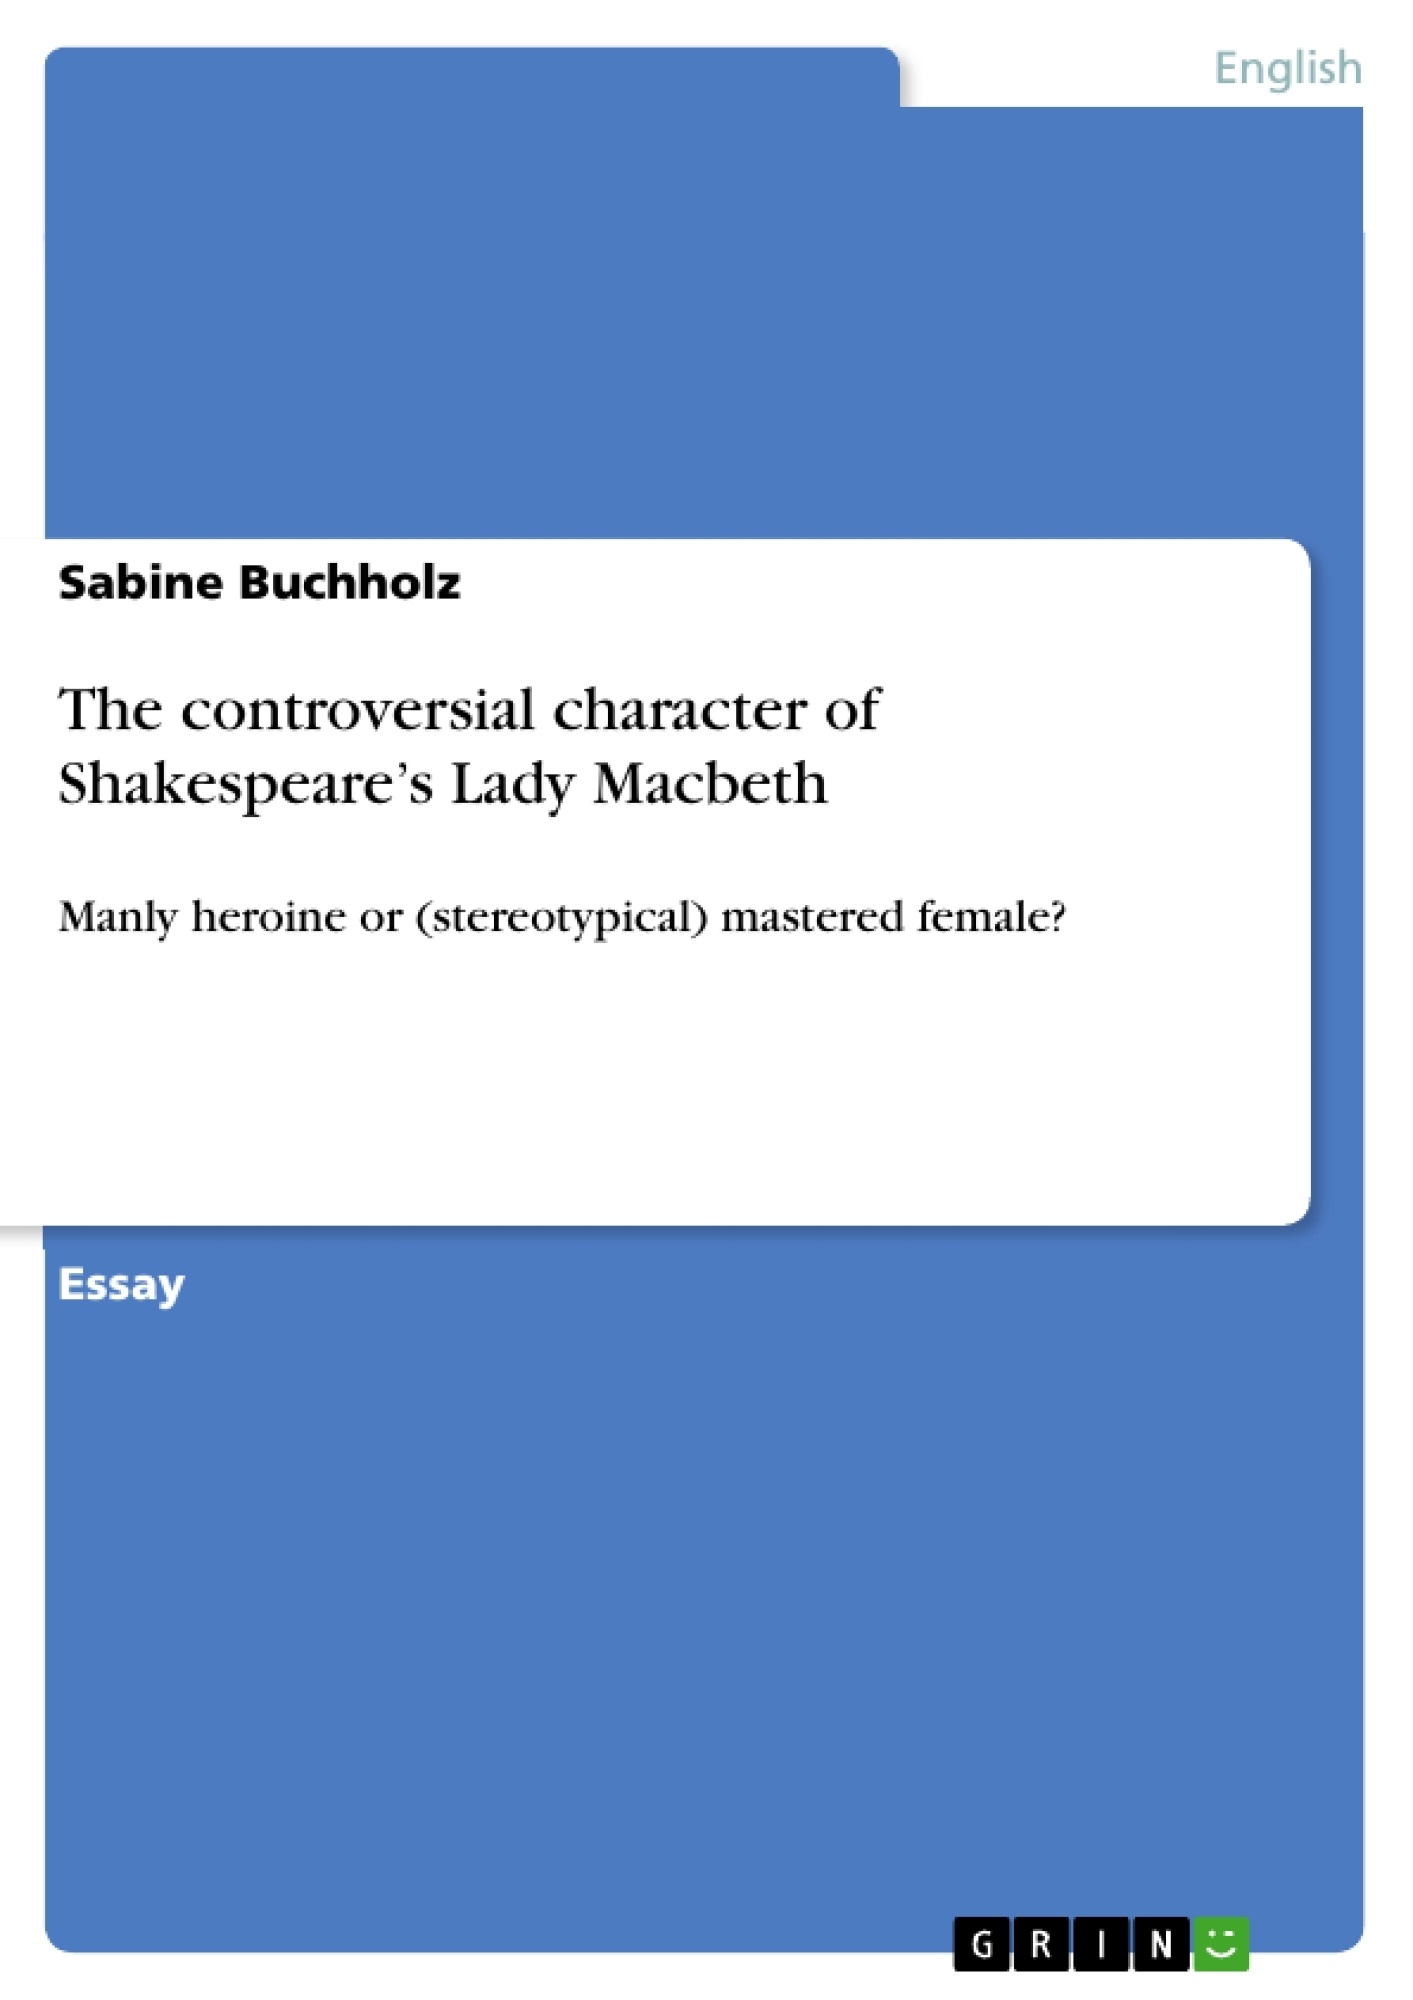 the controversial character of shakespeare s lady macbeth the controversial character of shakespeare s lady macbeth publish your master s thesis bachelor s thesis essay or term paper